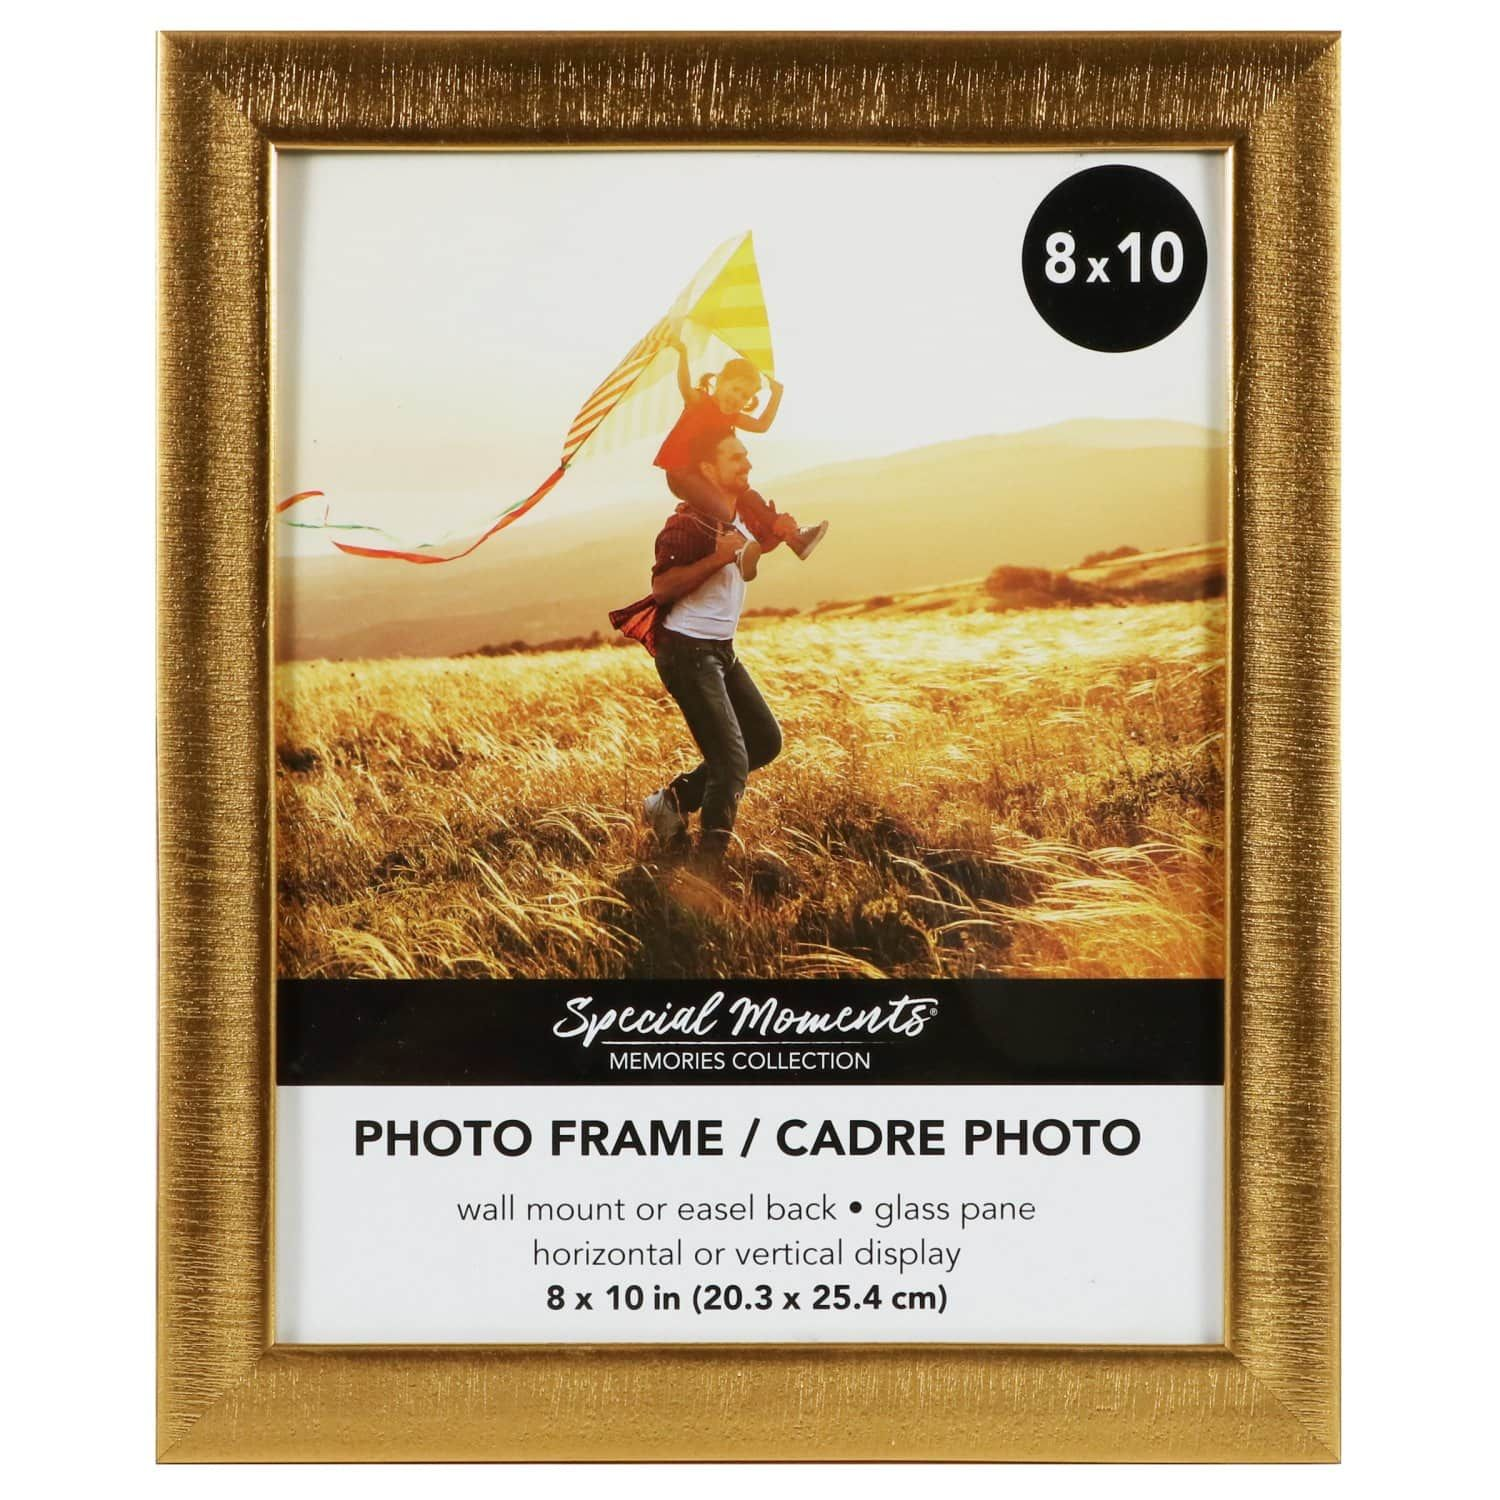 Special Moments 8x10-in  Gold Photo Frames in 2019 | Tony